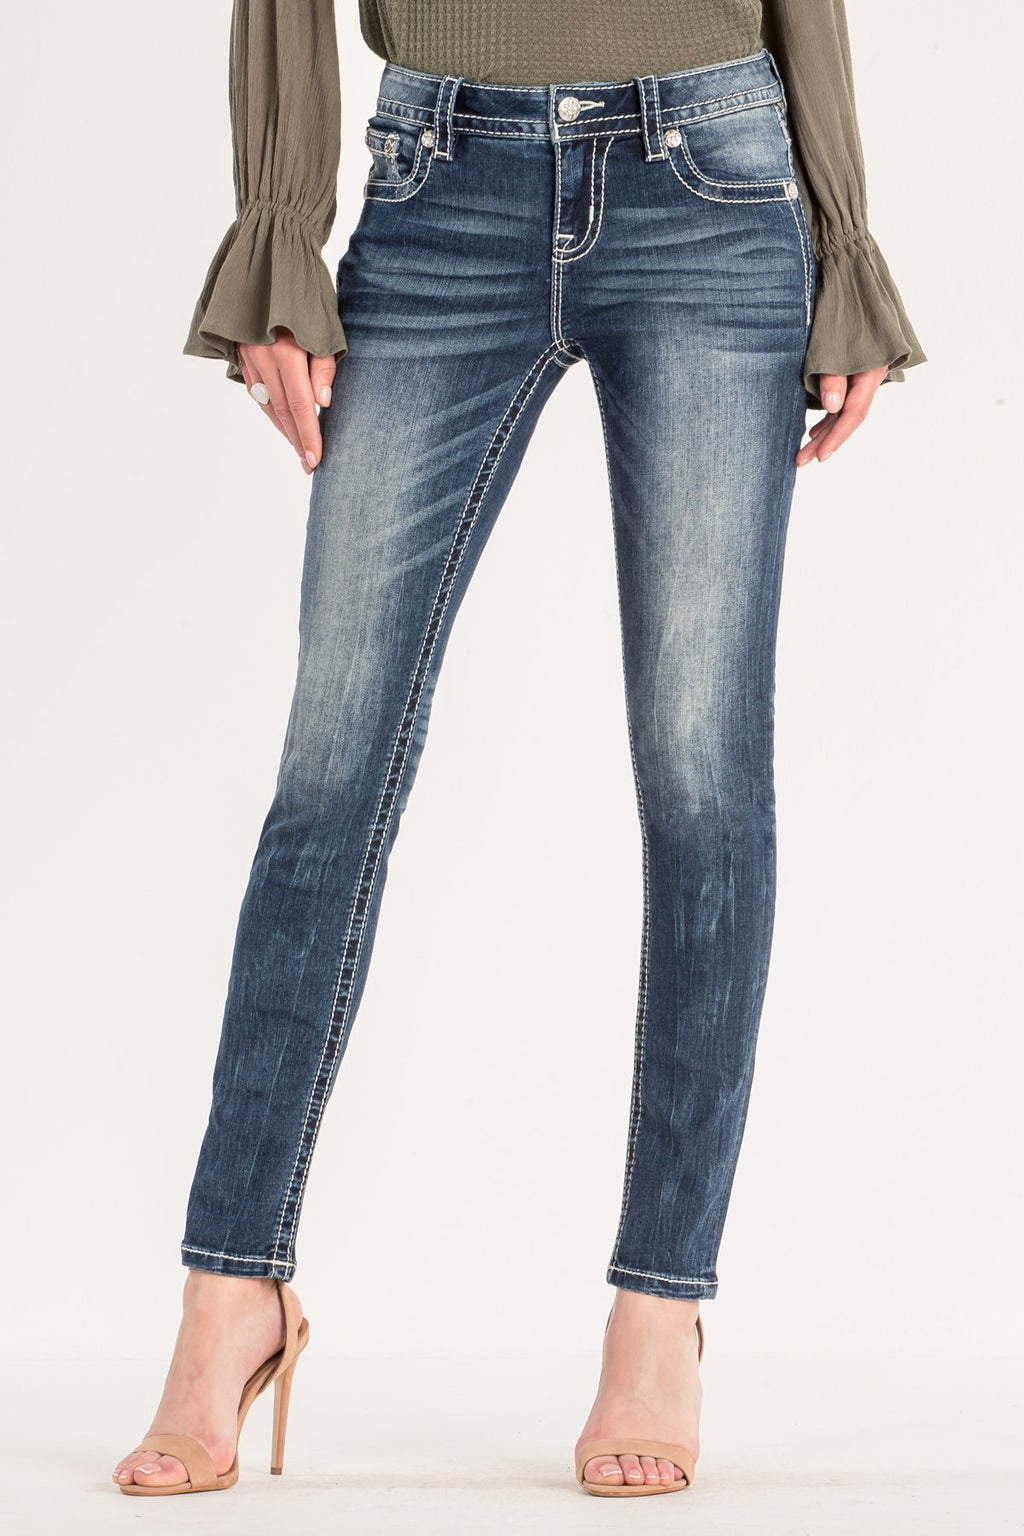 08fa8b0c23ce8 EMBROIDERED MID-RISE SKINNY JEANS - front